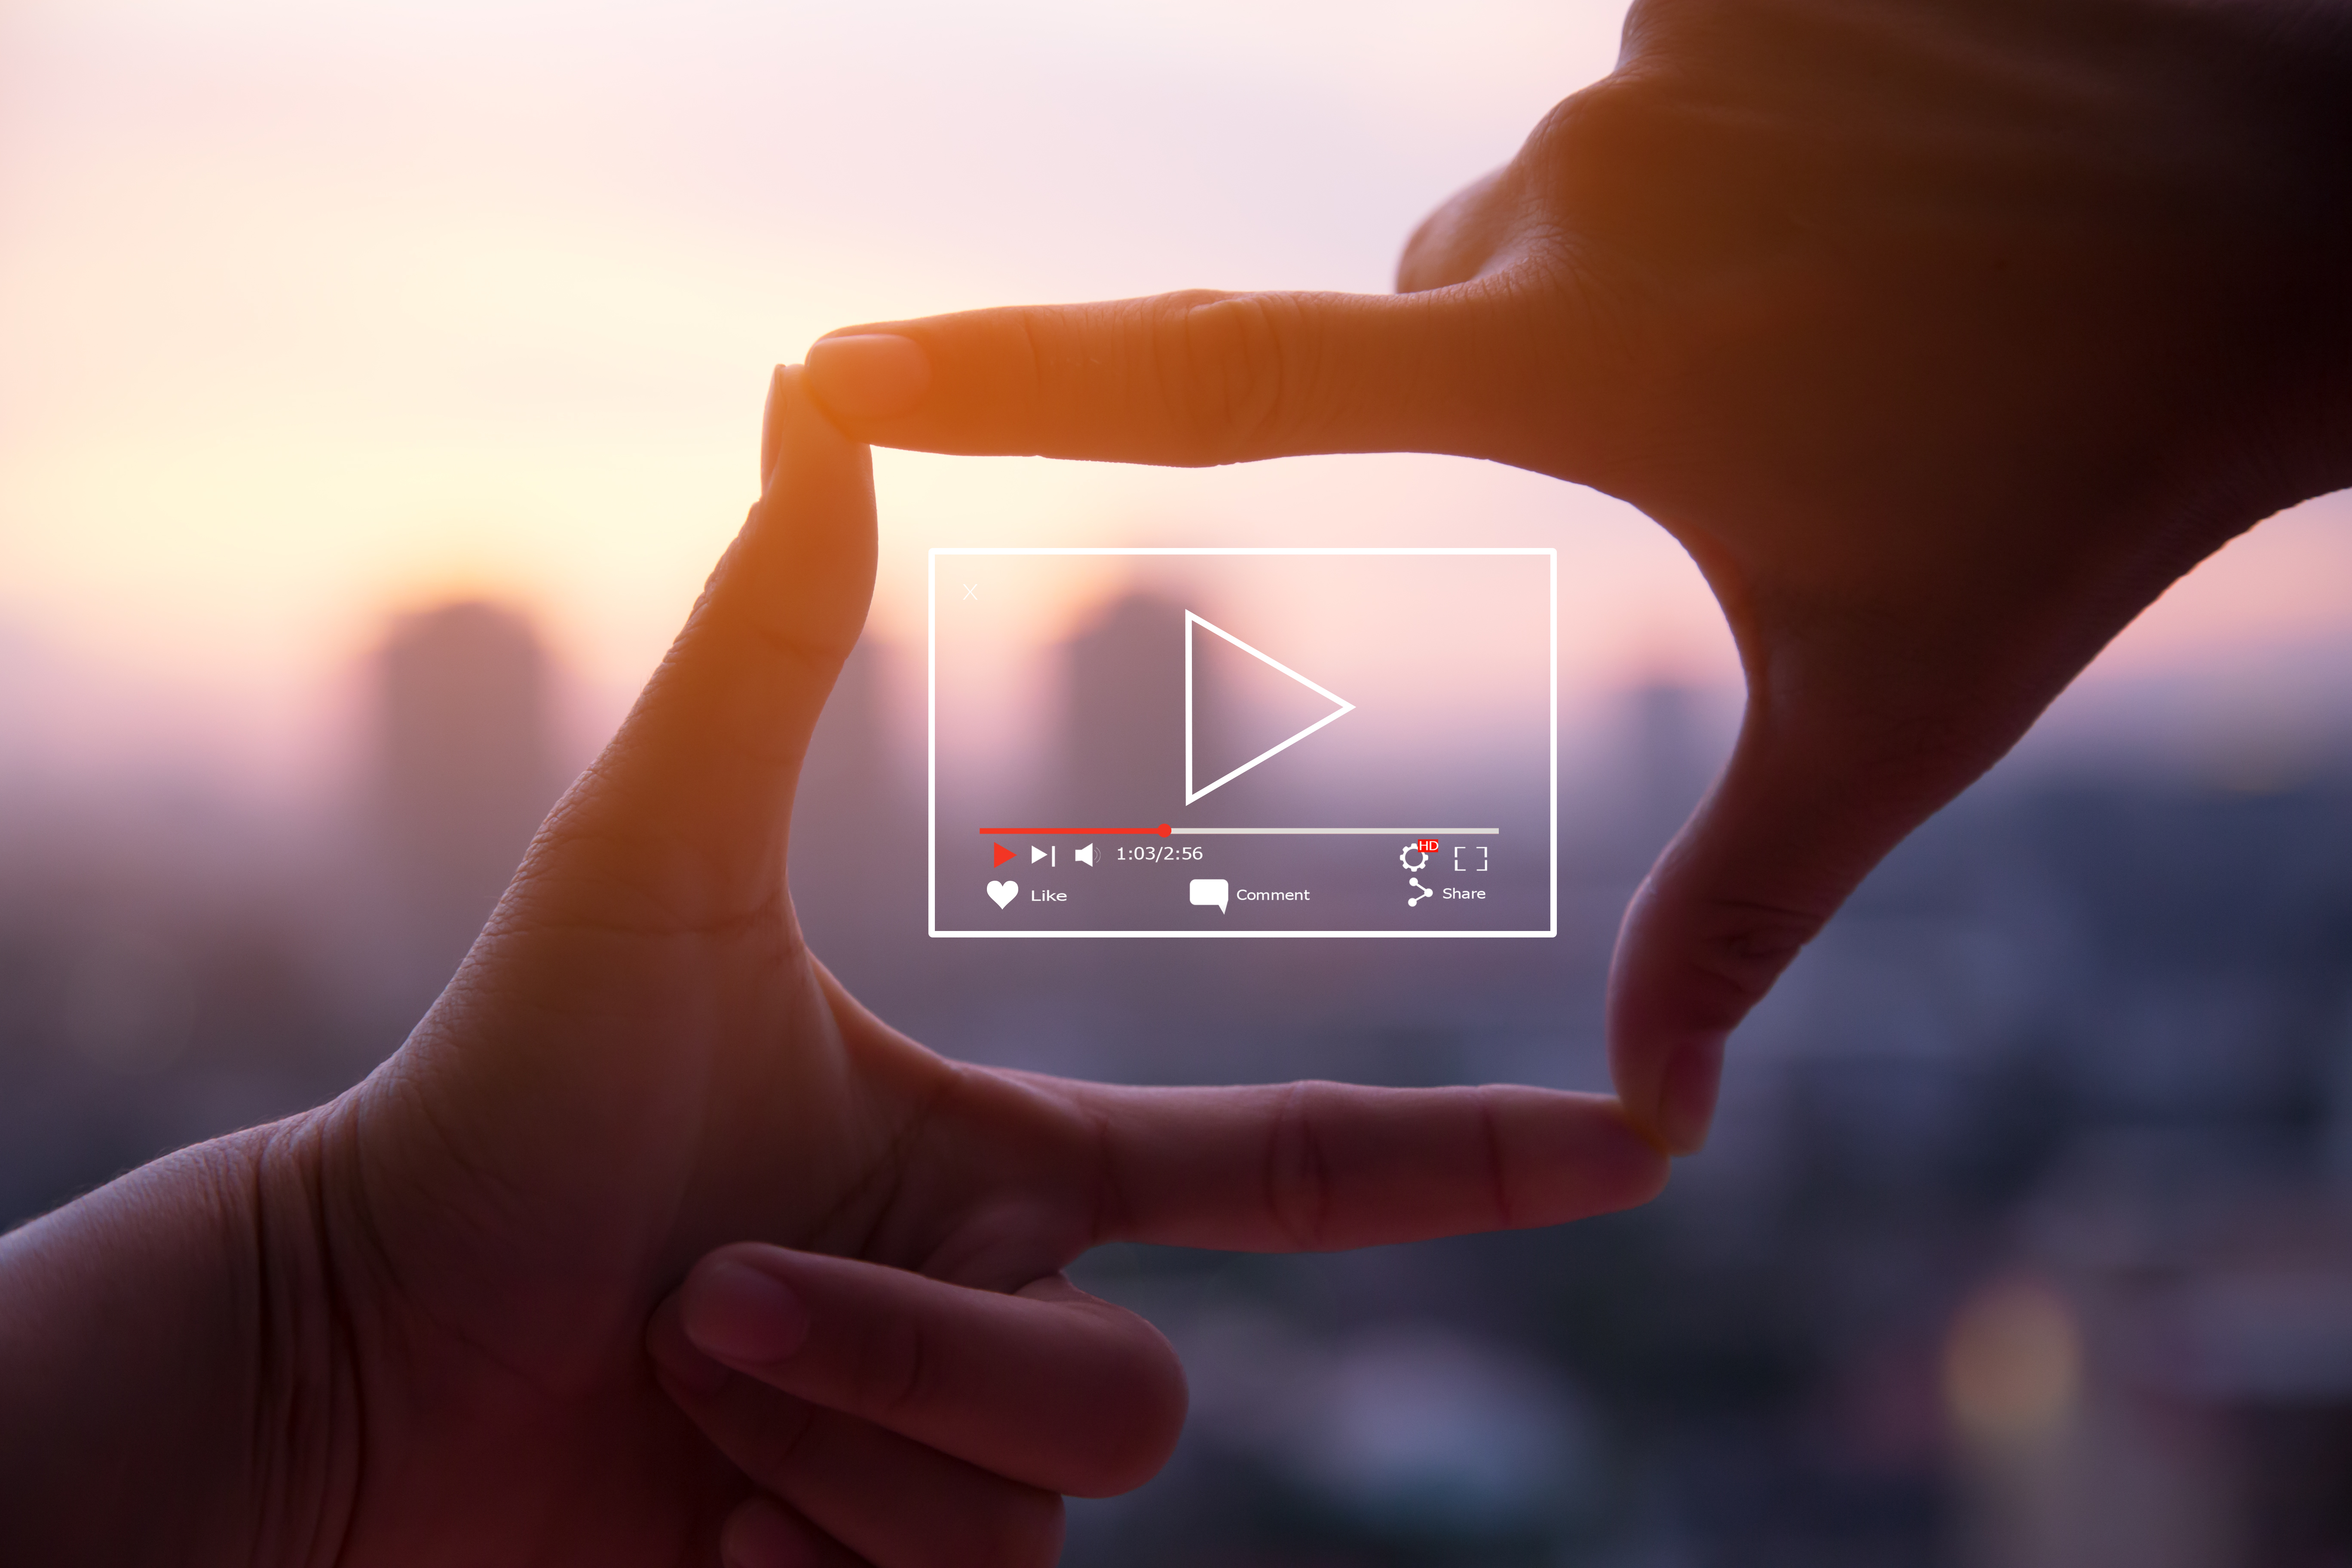 Two Hands Around a Play Video Button